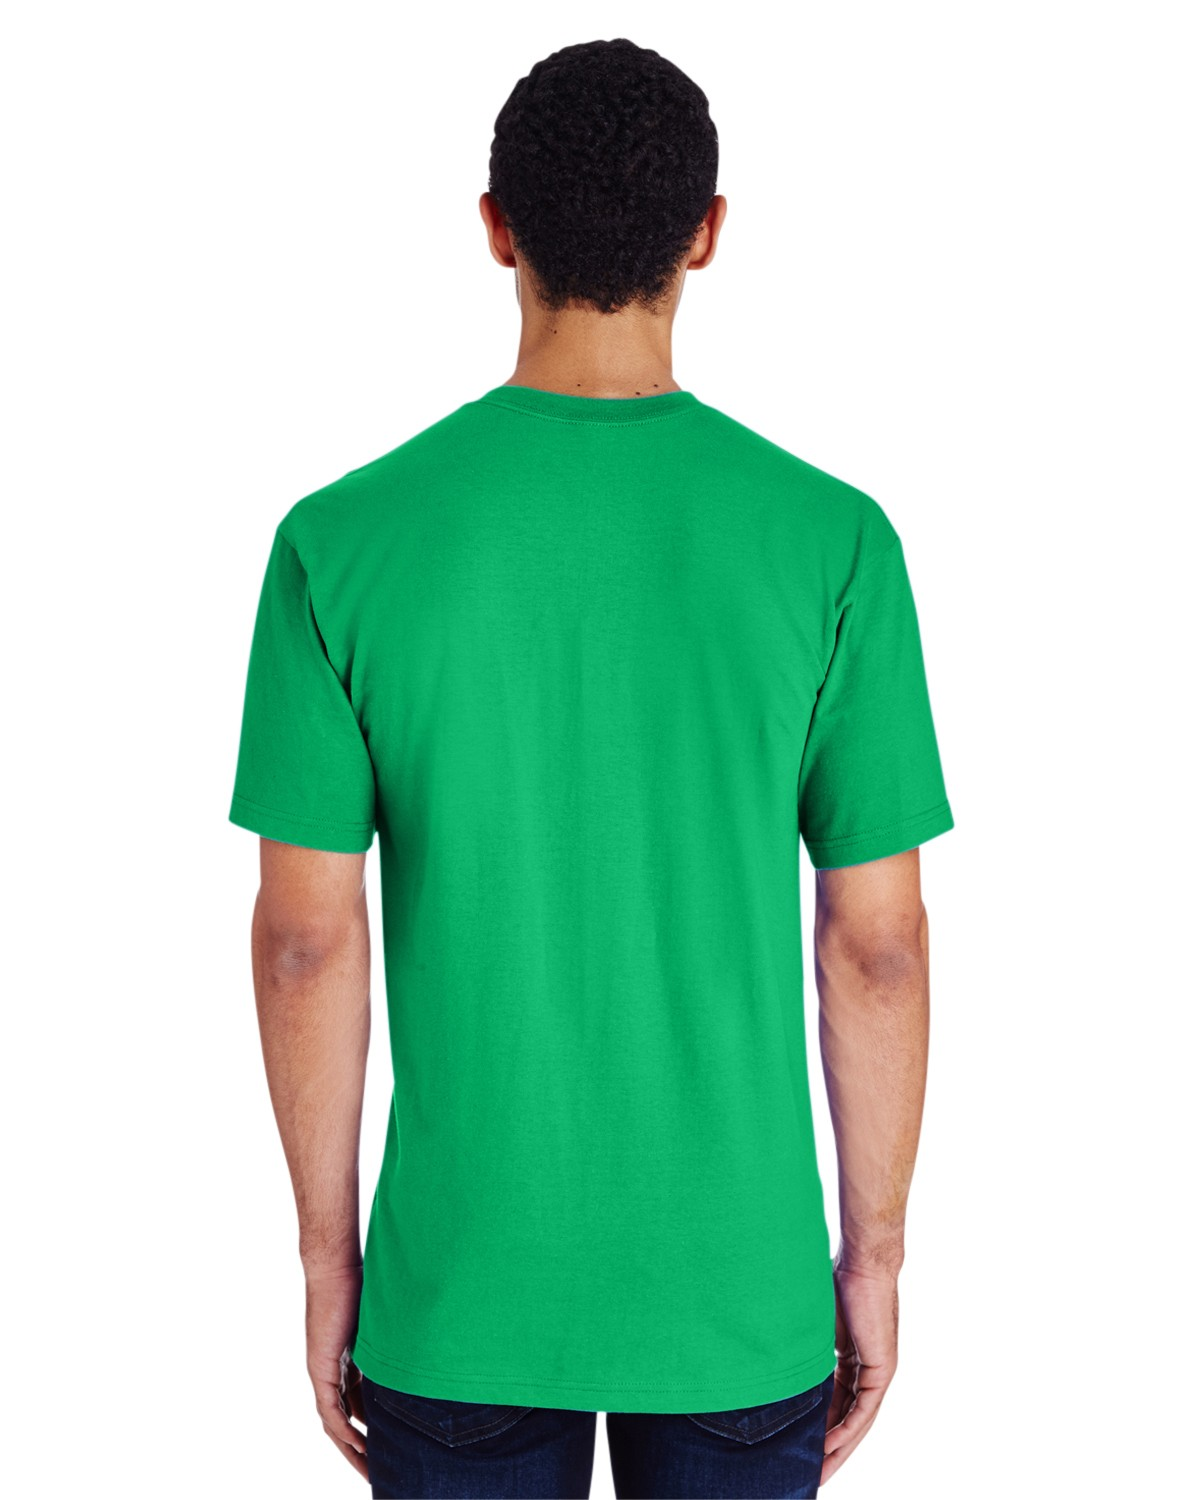 H000 Gildan IRISH GREEN